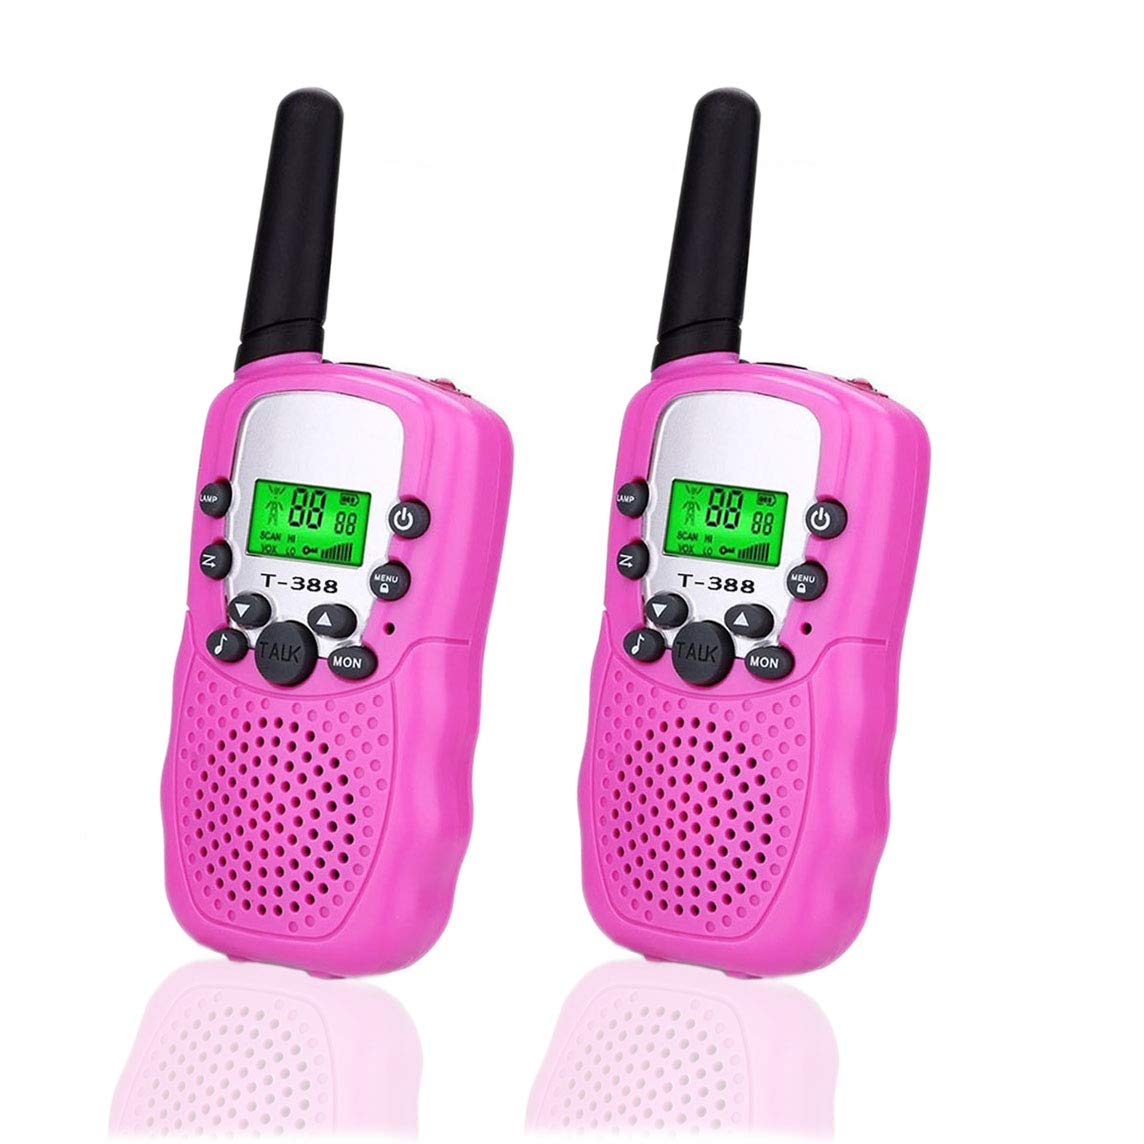 Amazon Happy Gift Toys For 3 12 Year Old Boys Walkie Talkies Kids Girls1PairPink Games